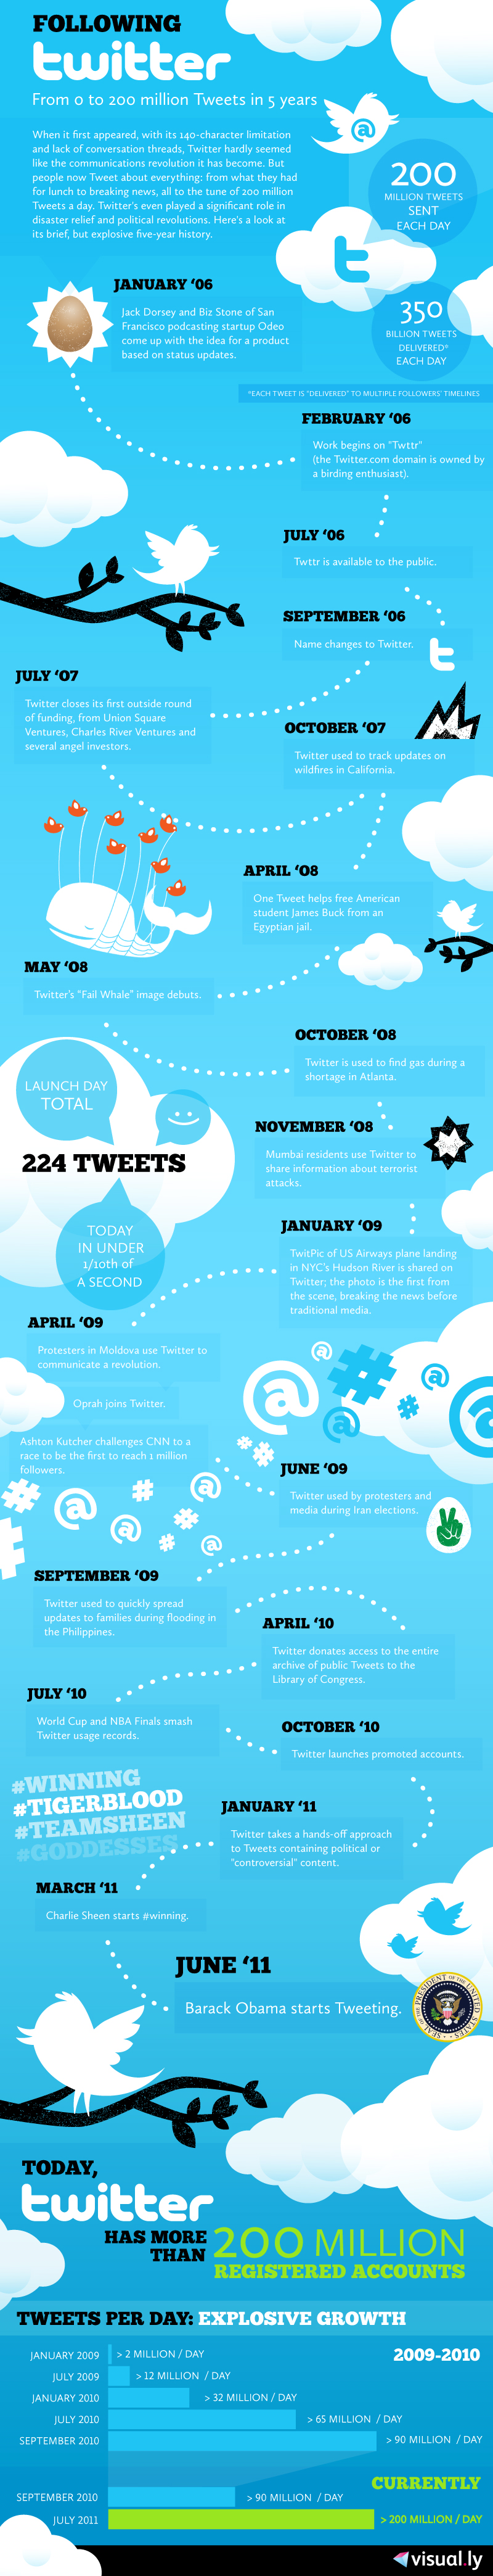 infographie-twitter-5-ans